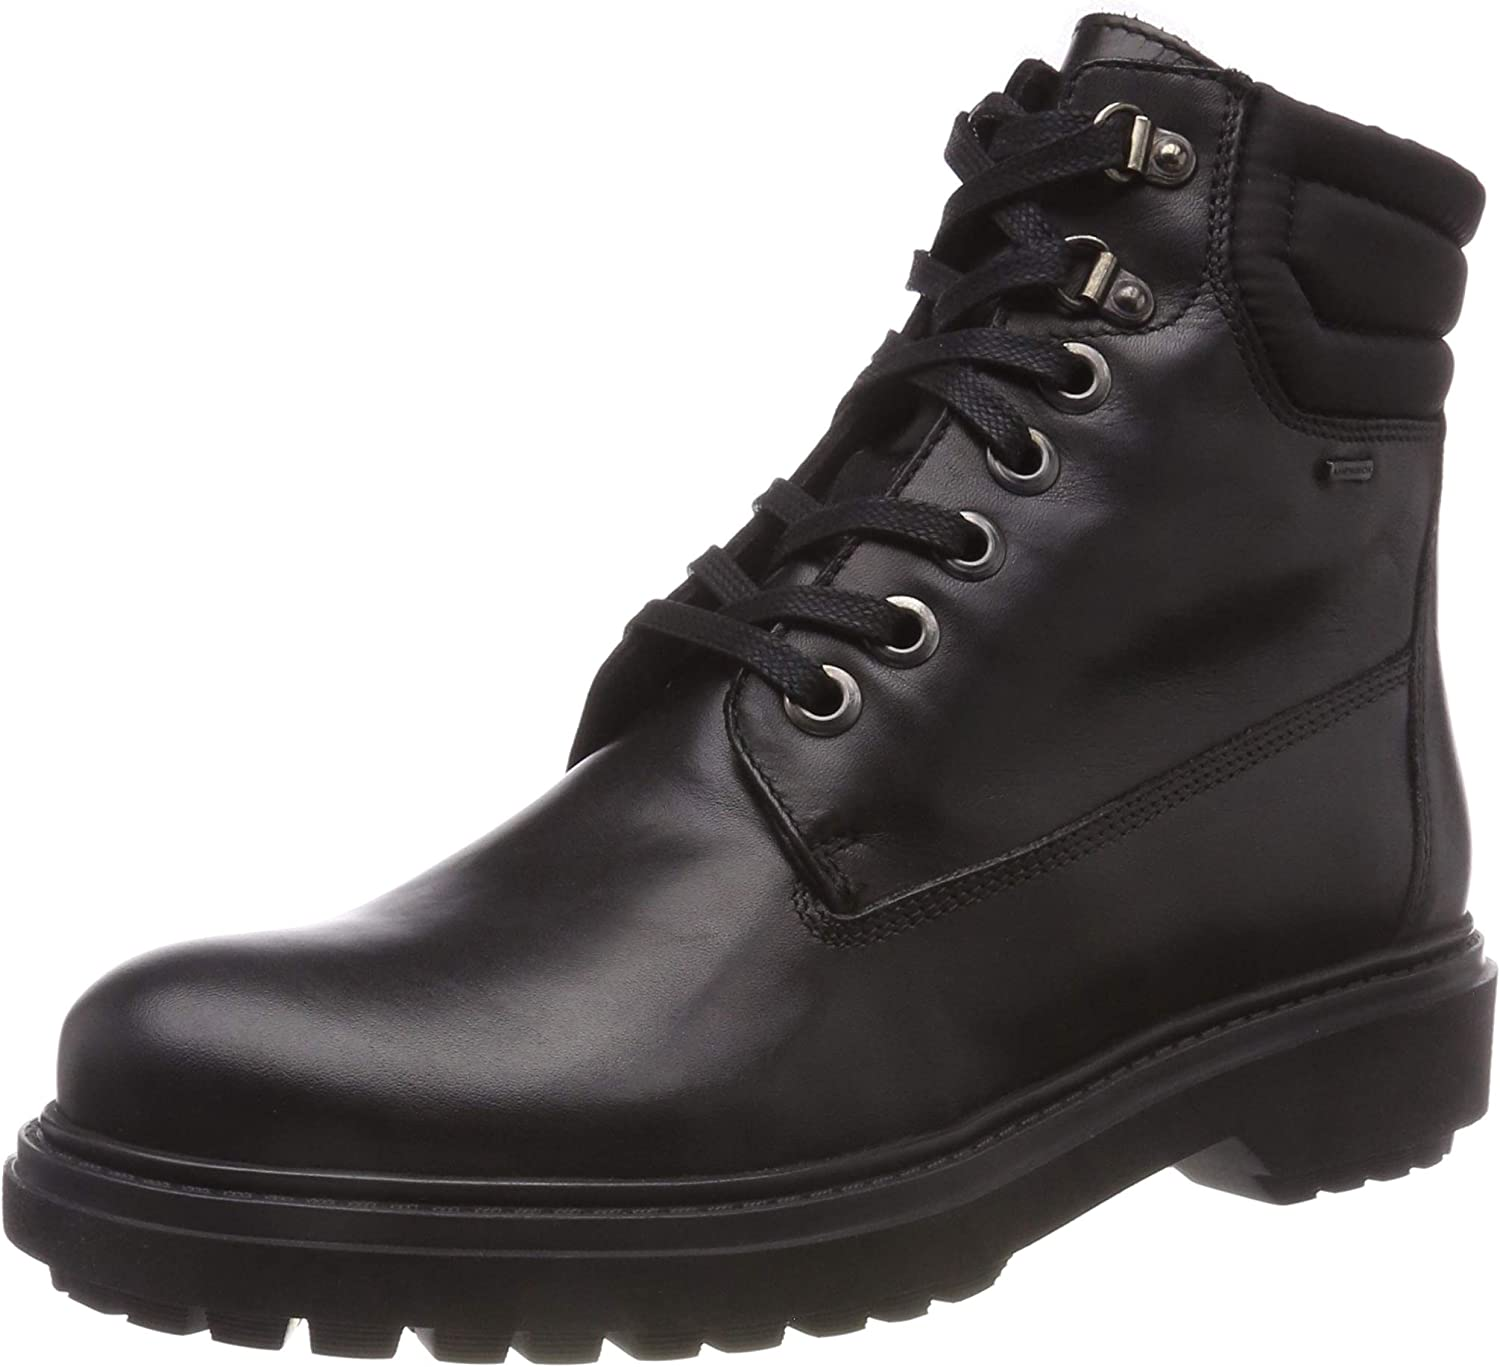 Geox Women's Asheely ABX Waterproof Leather Lace-Up